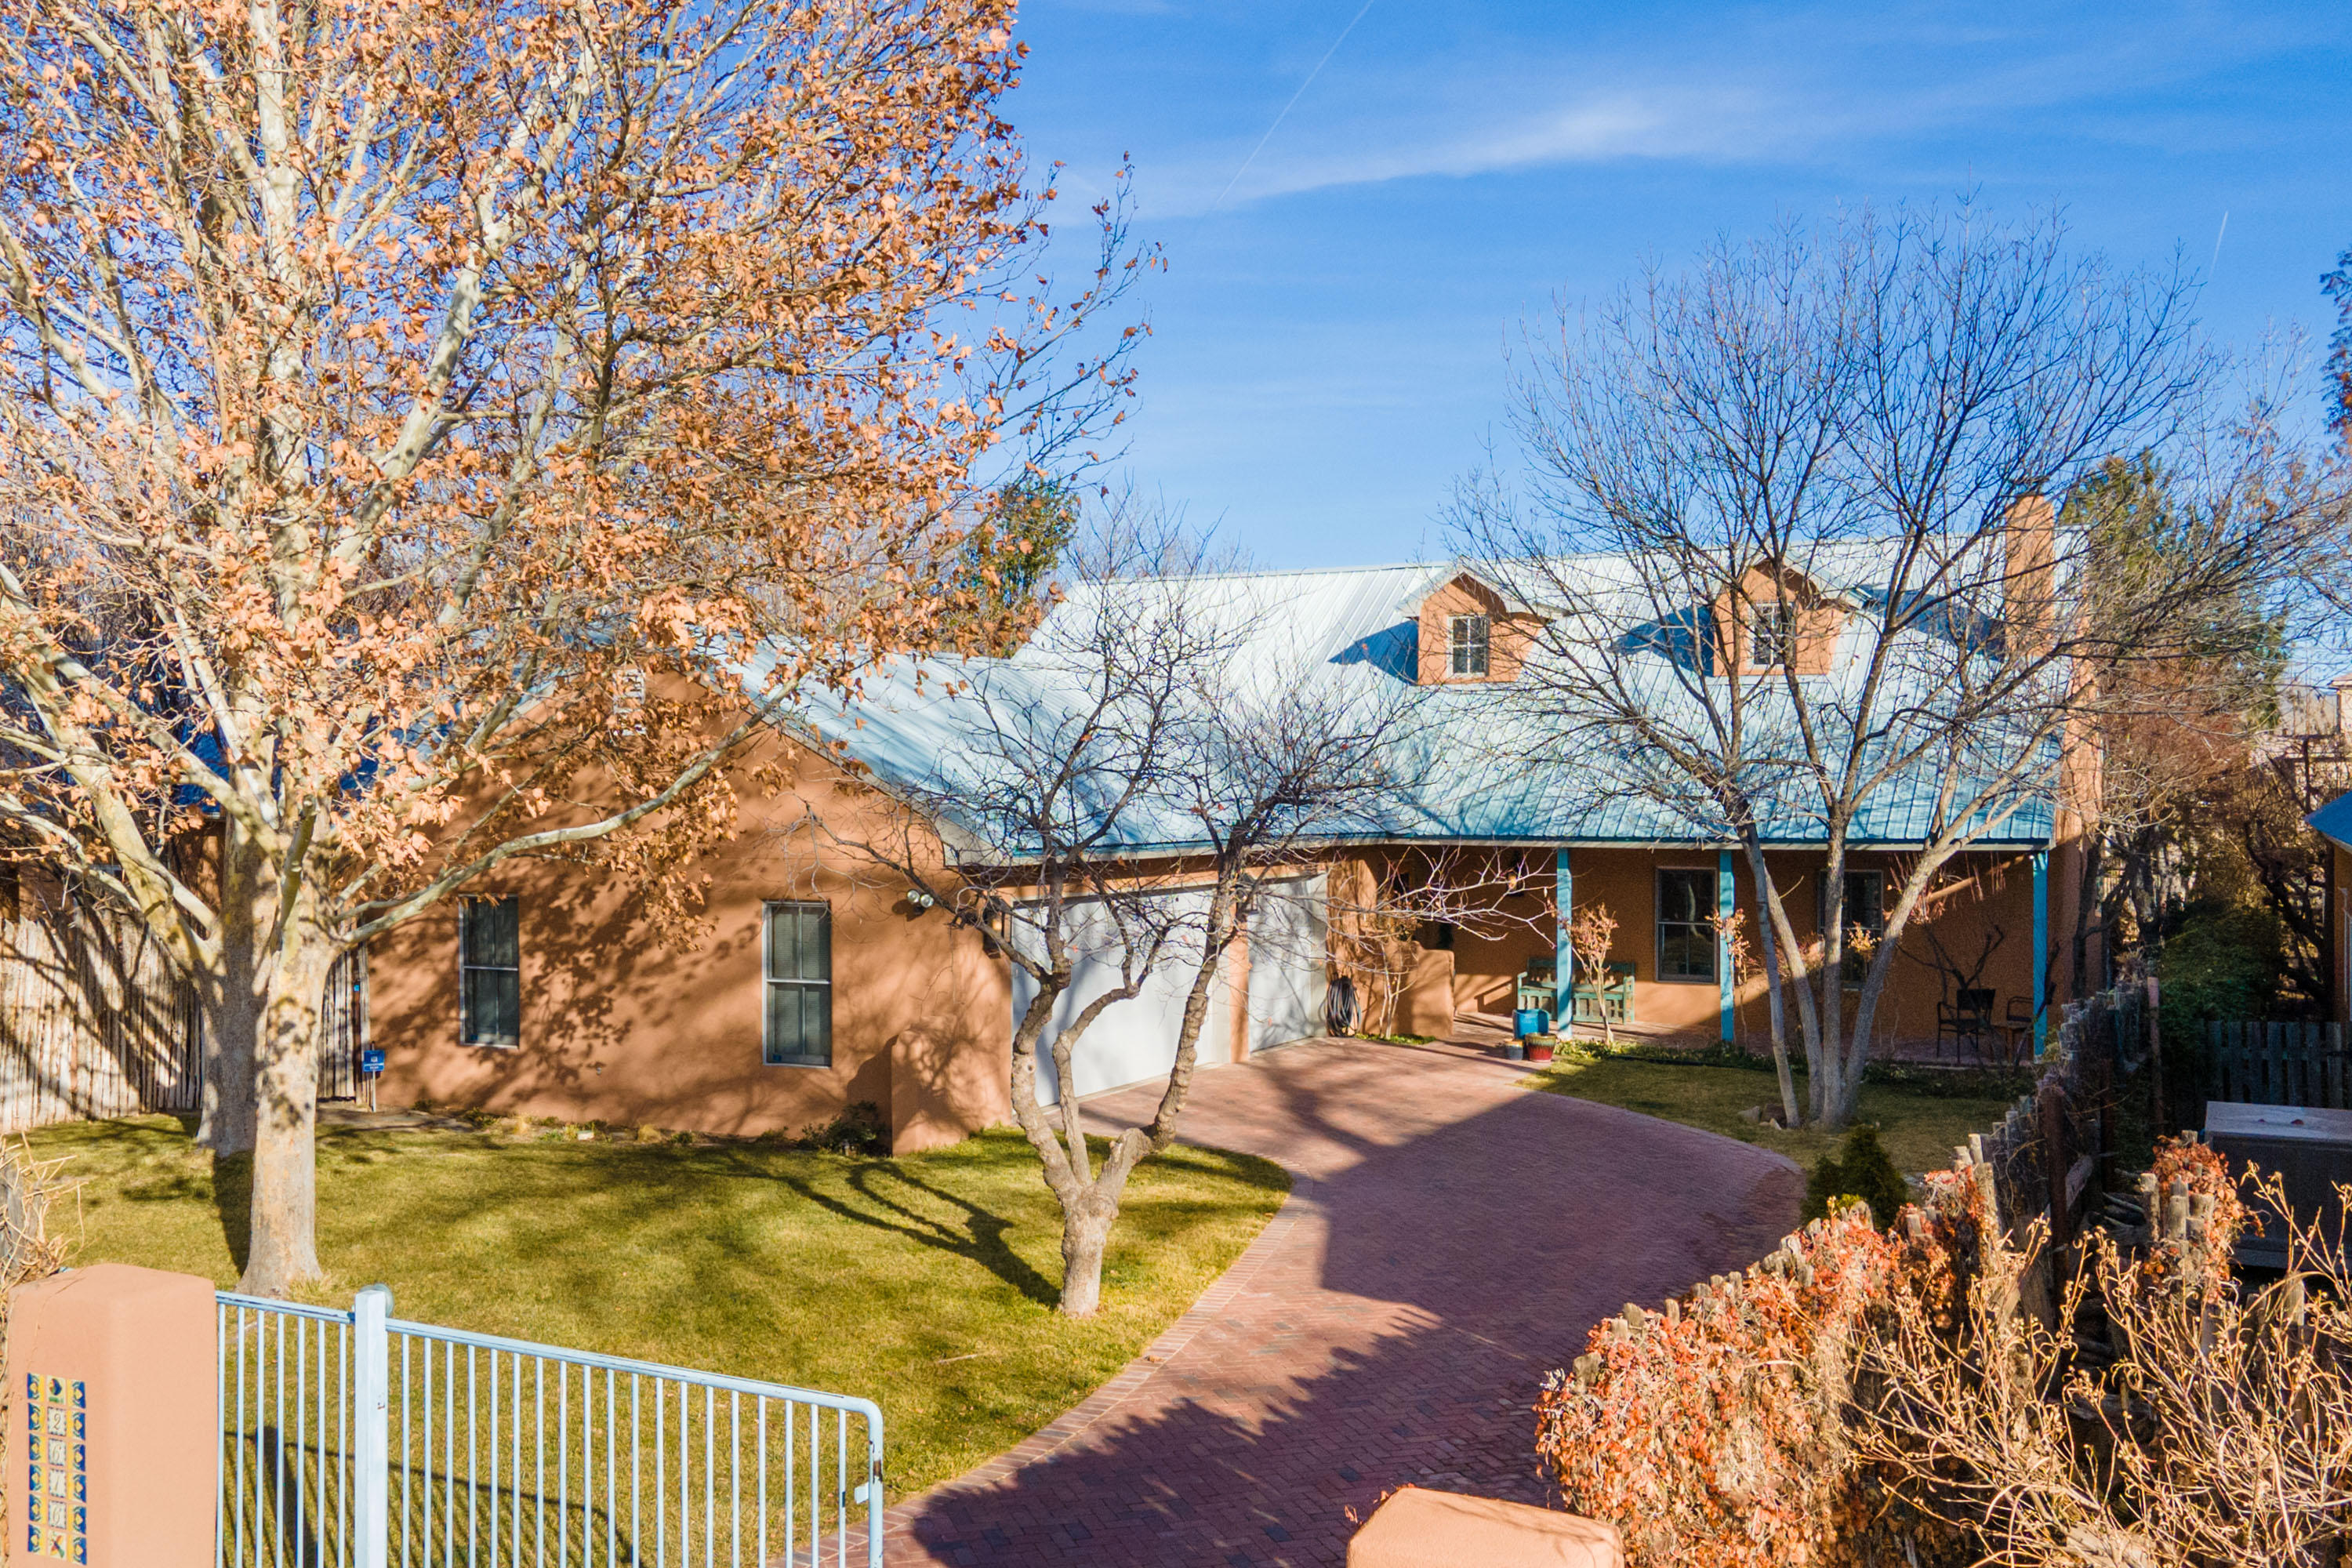 WOW. Open concept dream floorplan for today's work/school from home lifestyle.  Quintessential North Valley Northern New Mexico style custom home on a quiet, peaceful, serene cul-de-sac. The light-filled interior is open & spacious, featuring several interior adobe walls as design accents, cathedral ceilings, and two living spaces.  Entertainer? Love to cook? Enjoy the outdoors? Look no further! The spacious master suite includes a completely remodeled incredible spa-like bath, with individual lighted mirrors. Unbelievable kitchen just remodeled! The upstairs loft offers office space with a large built in counter for desk or crafting, also could be your media room or playroom, or gym. Refrig. air, radiant heating, 3 bedrooms, 3 full bathrooms, open kitchen, and 3 car garage. Offer NOW!